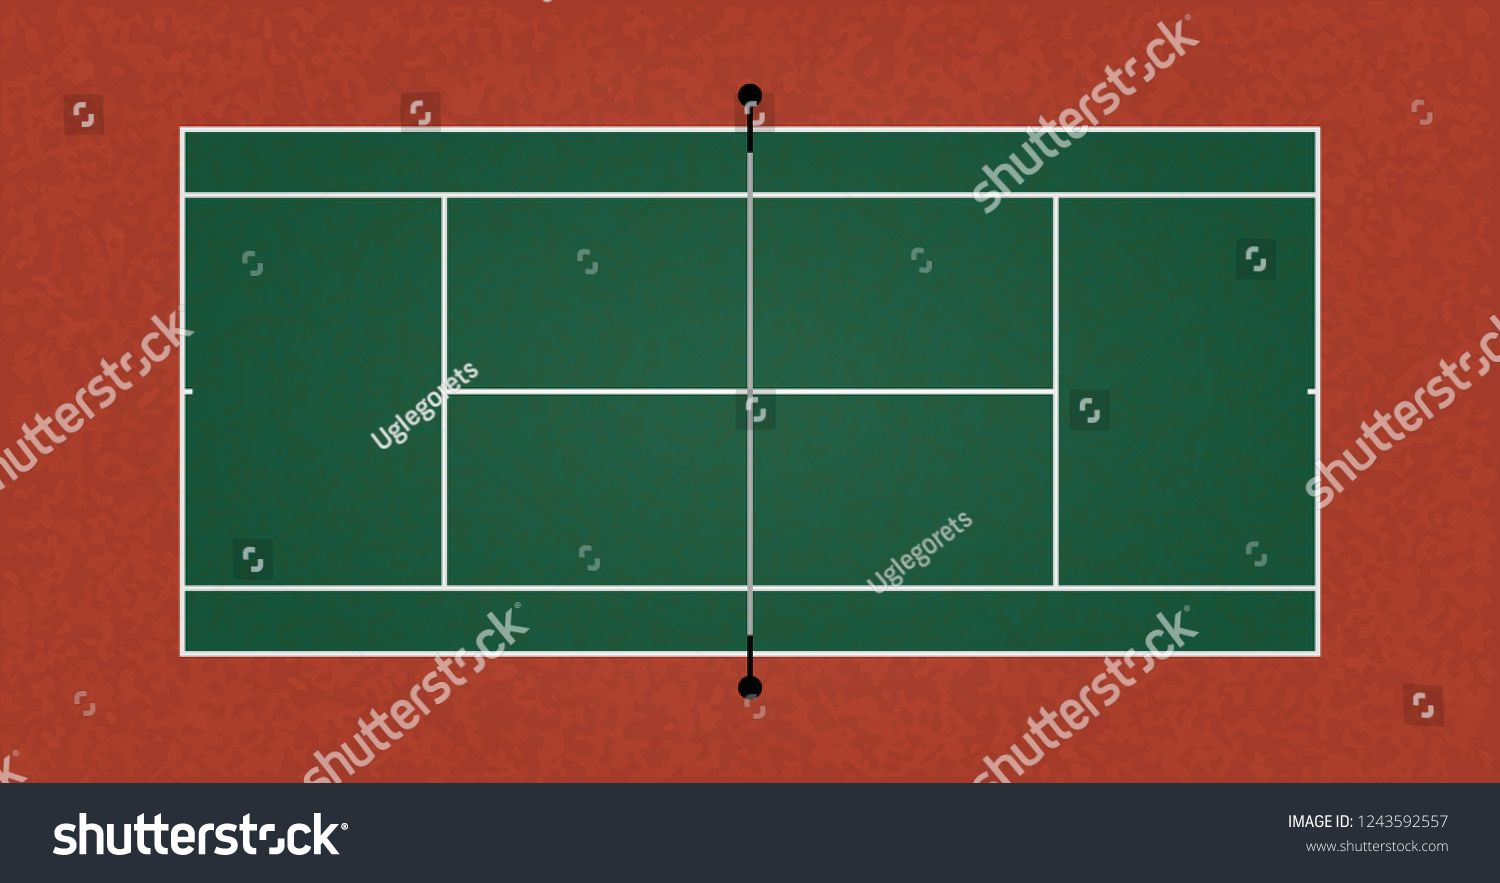 A Textured Realistic Tennis Court Illustration Vector Eps 10 Ad Sponsored Tennis Court Textured Realistic Tennis Court 10 Things Image